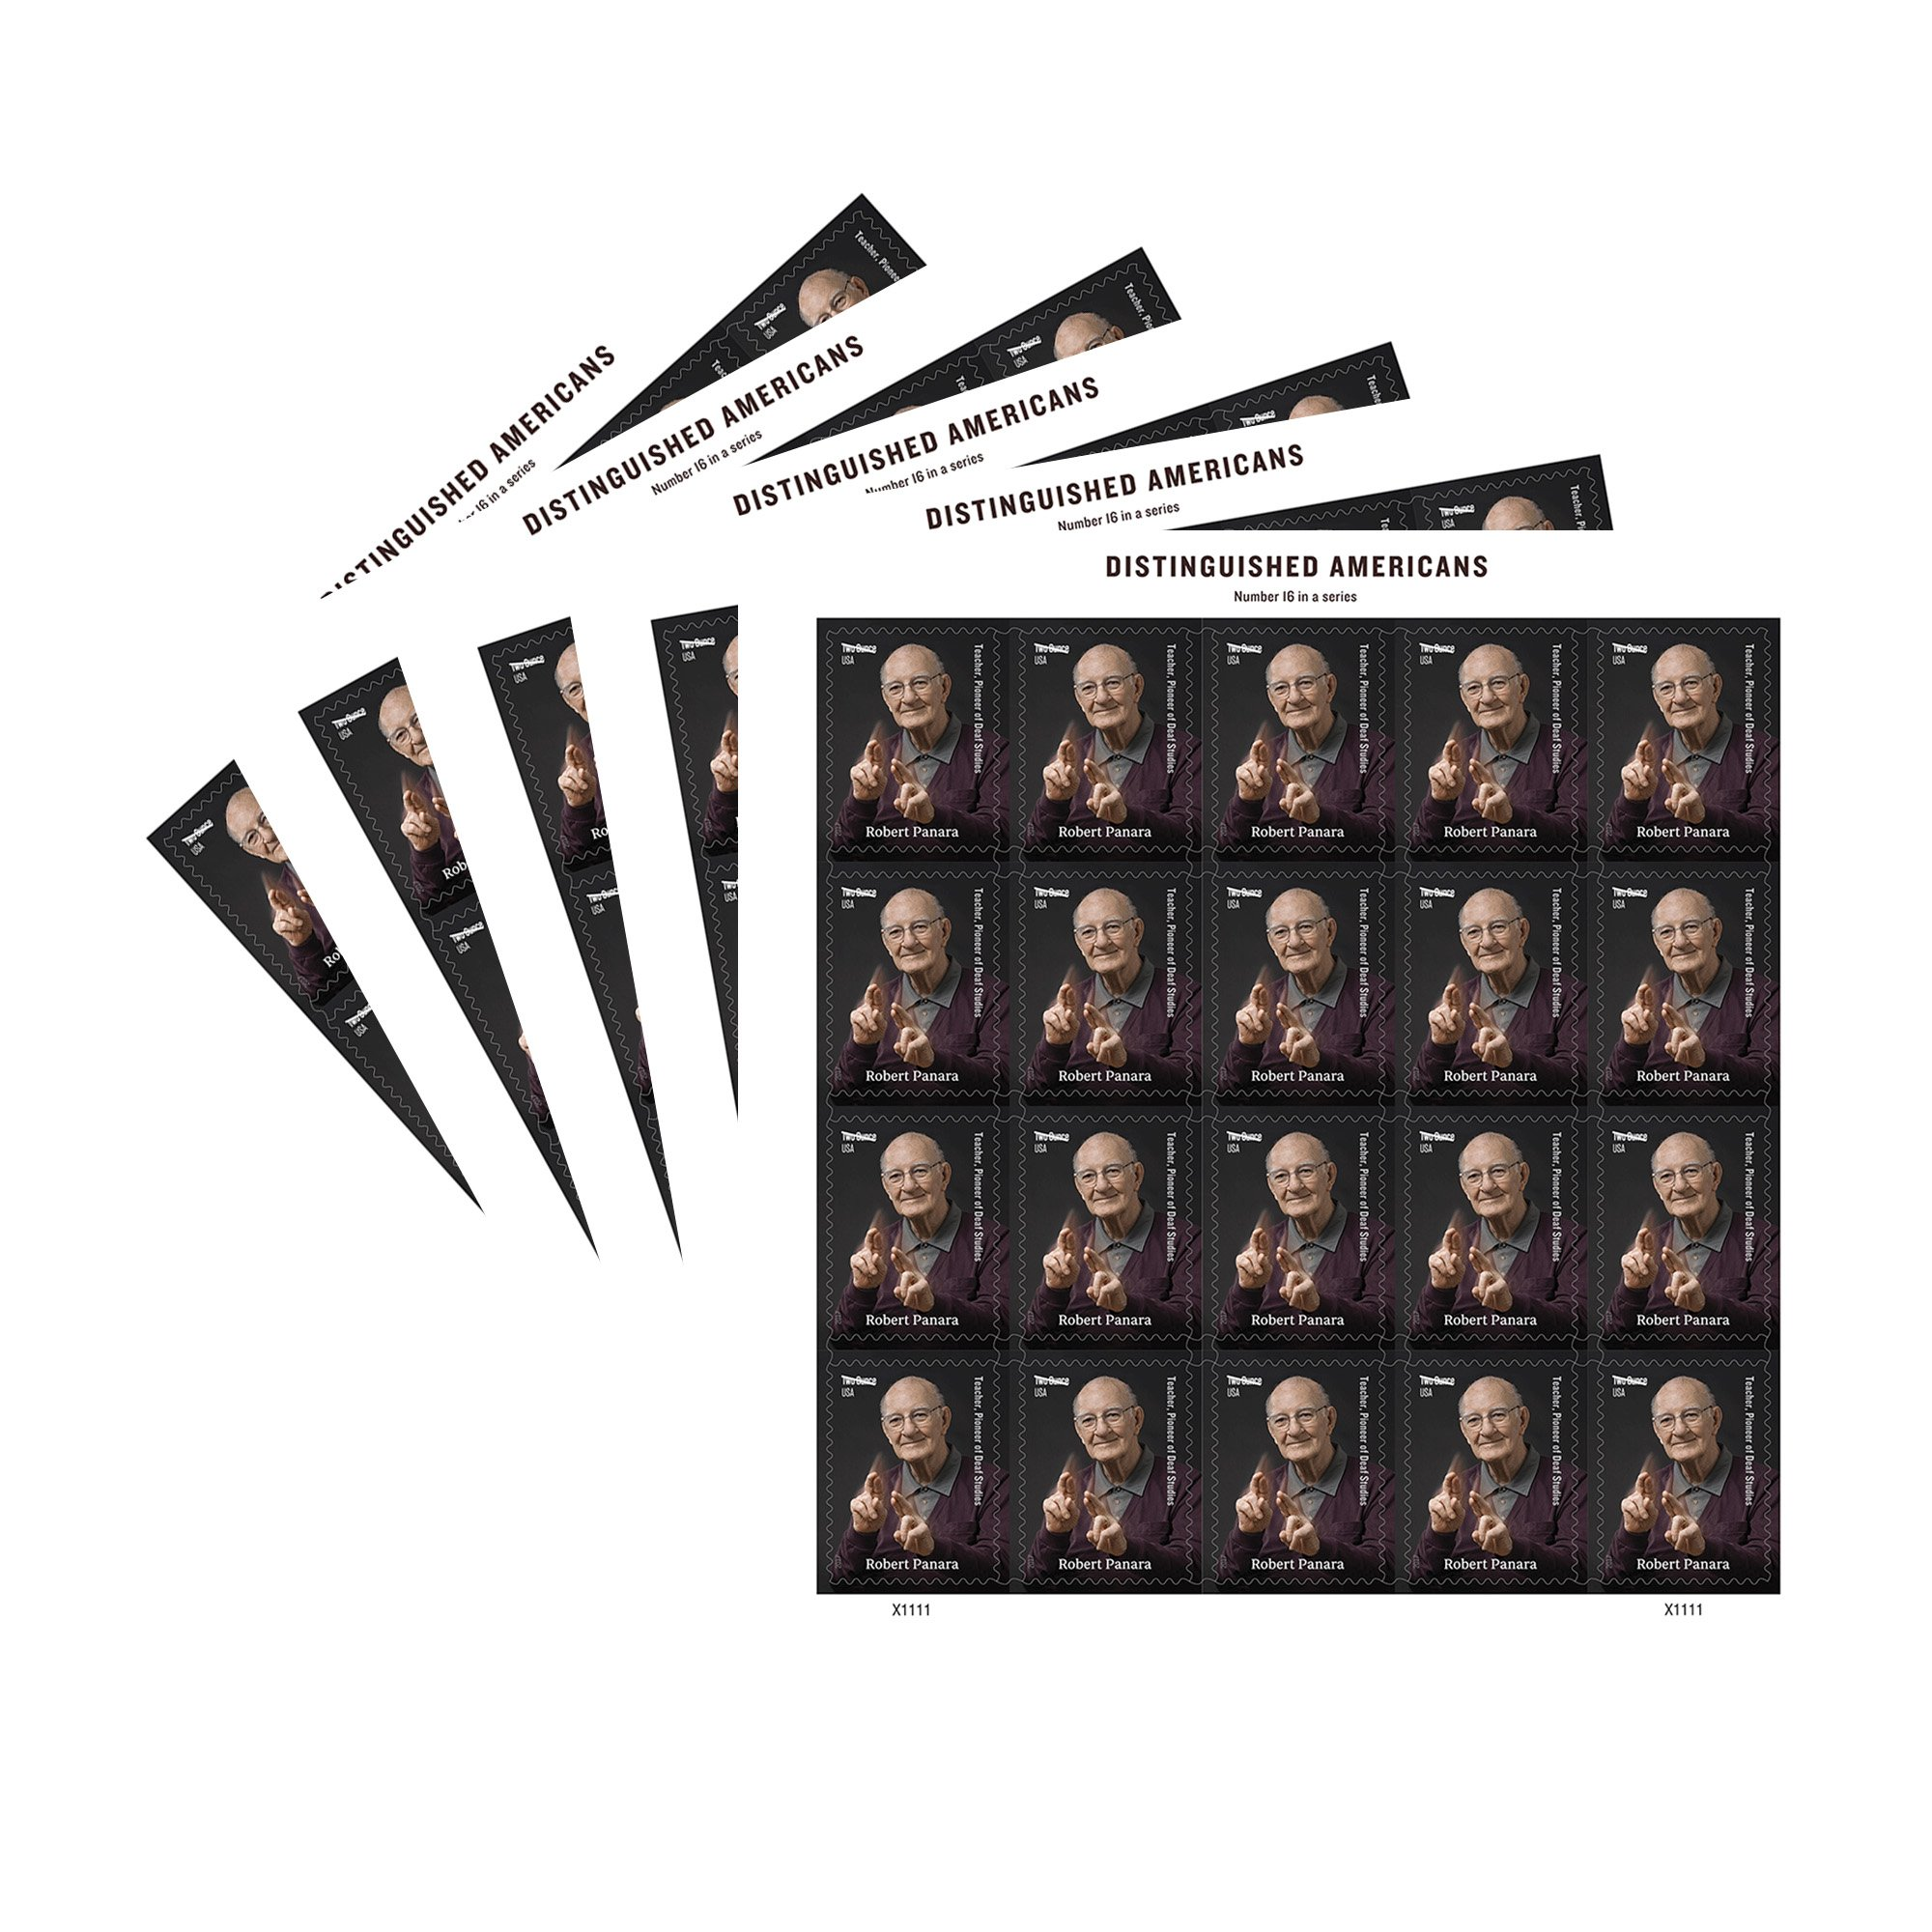 Robert Panara 5 Sheets of 20 Forever USPS First Class Two Ounce Postage Stamps Teacher Deaf Studies